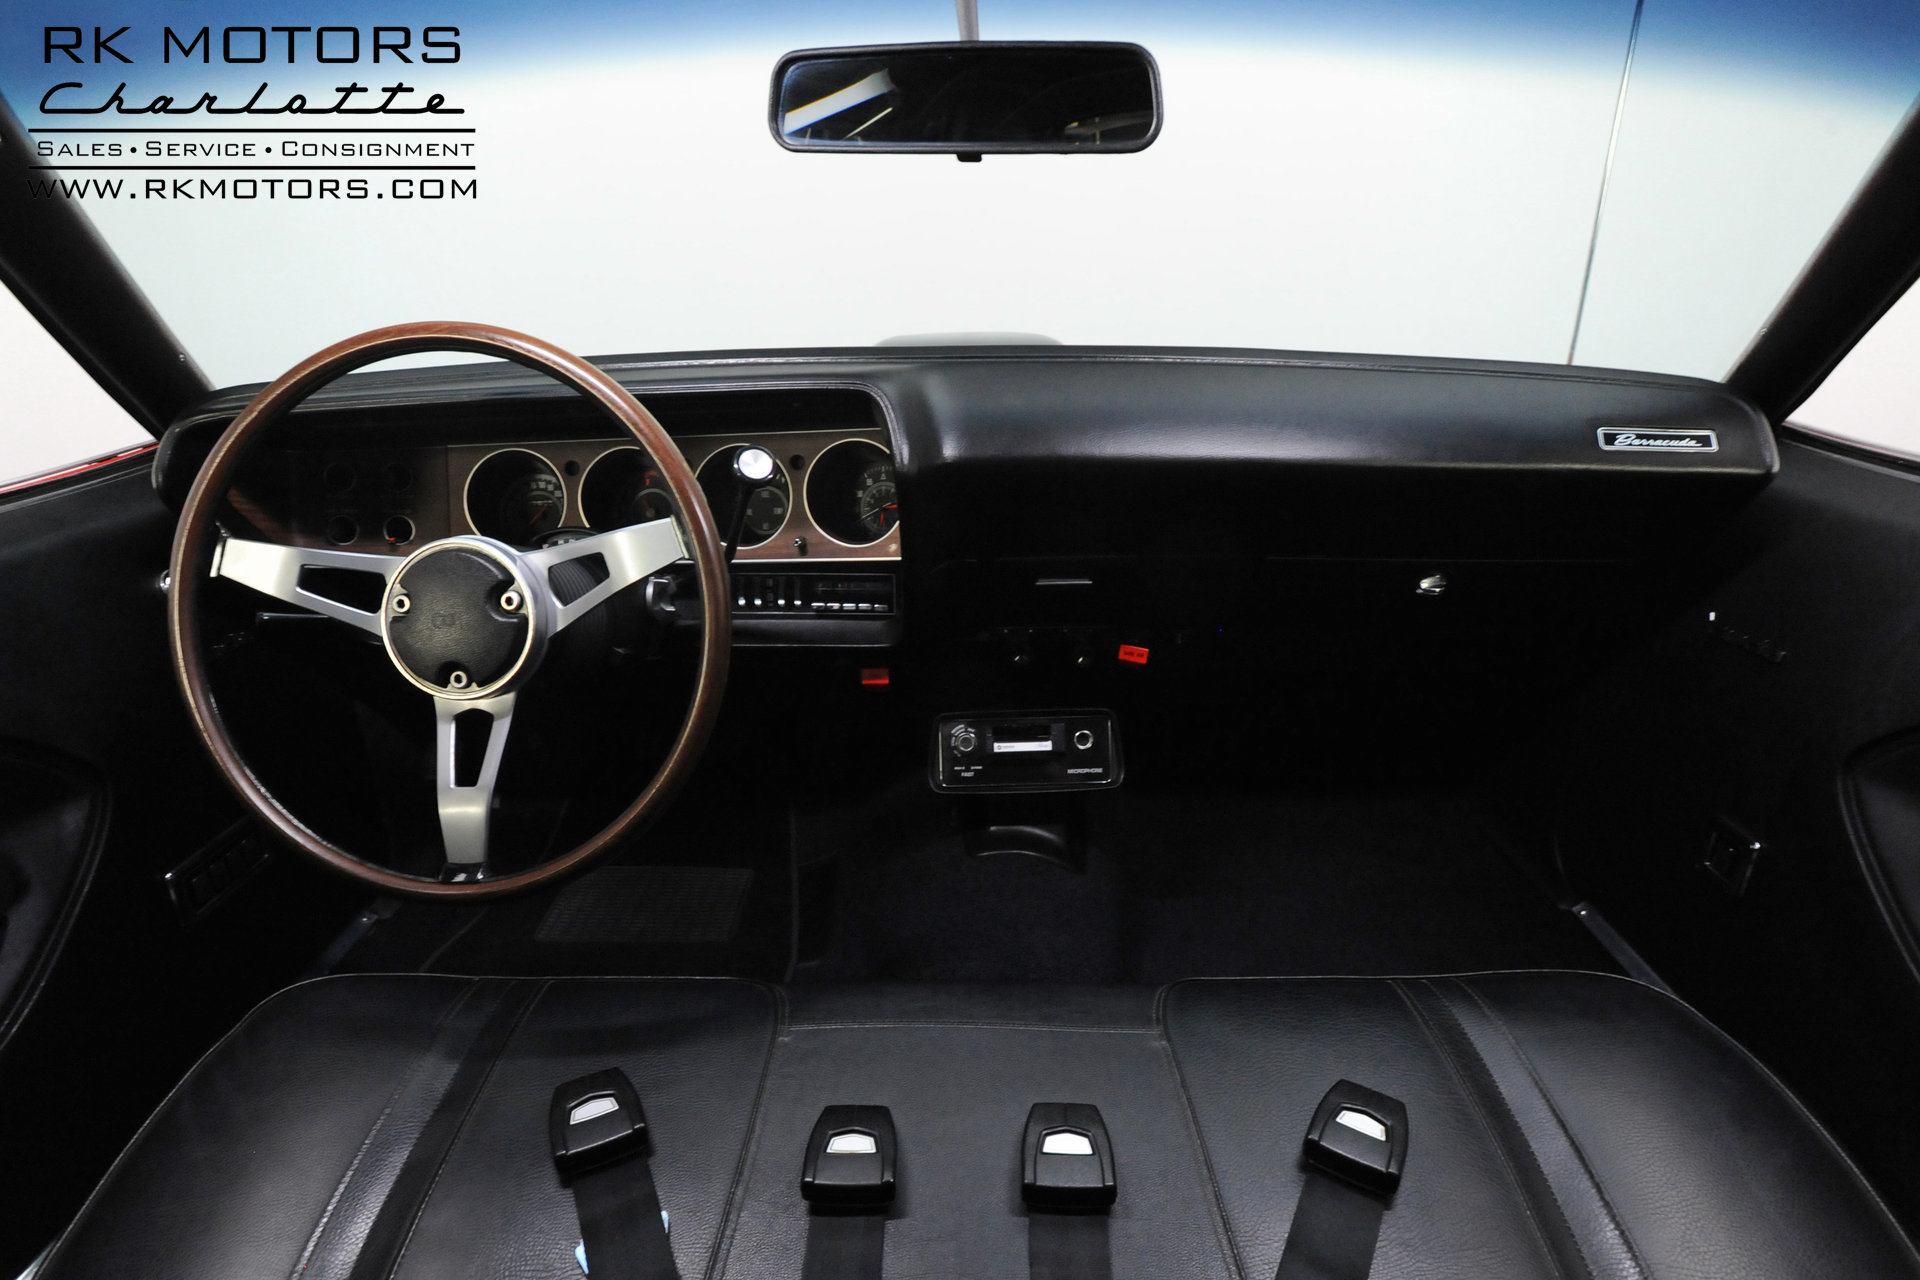 71 cuda interior pictures Gallery: The AMD Installation Center Classic Muscle Metal